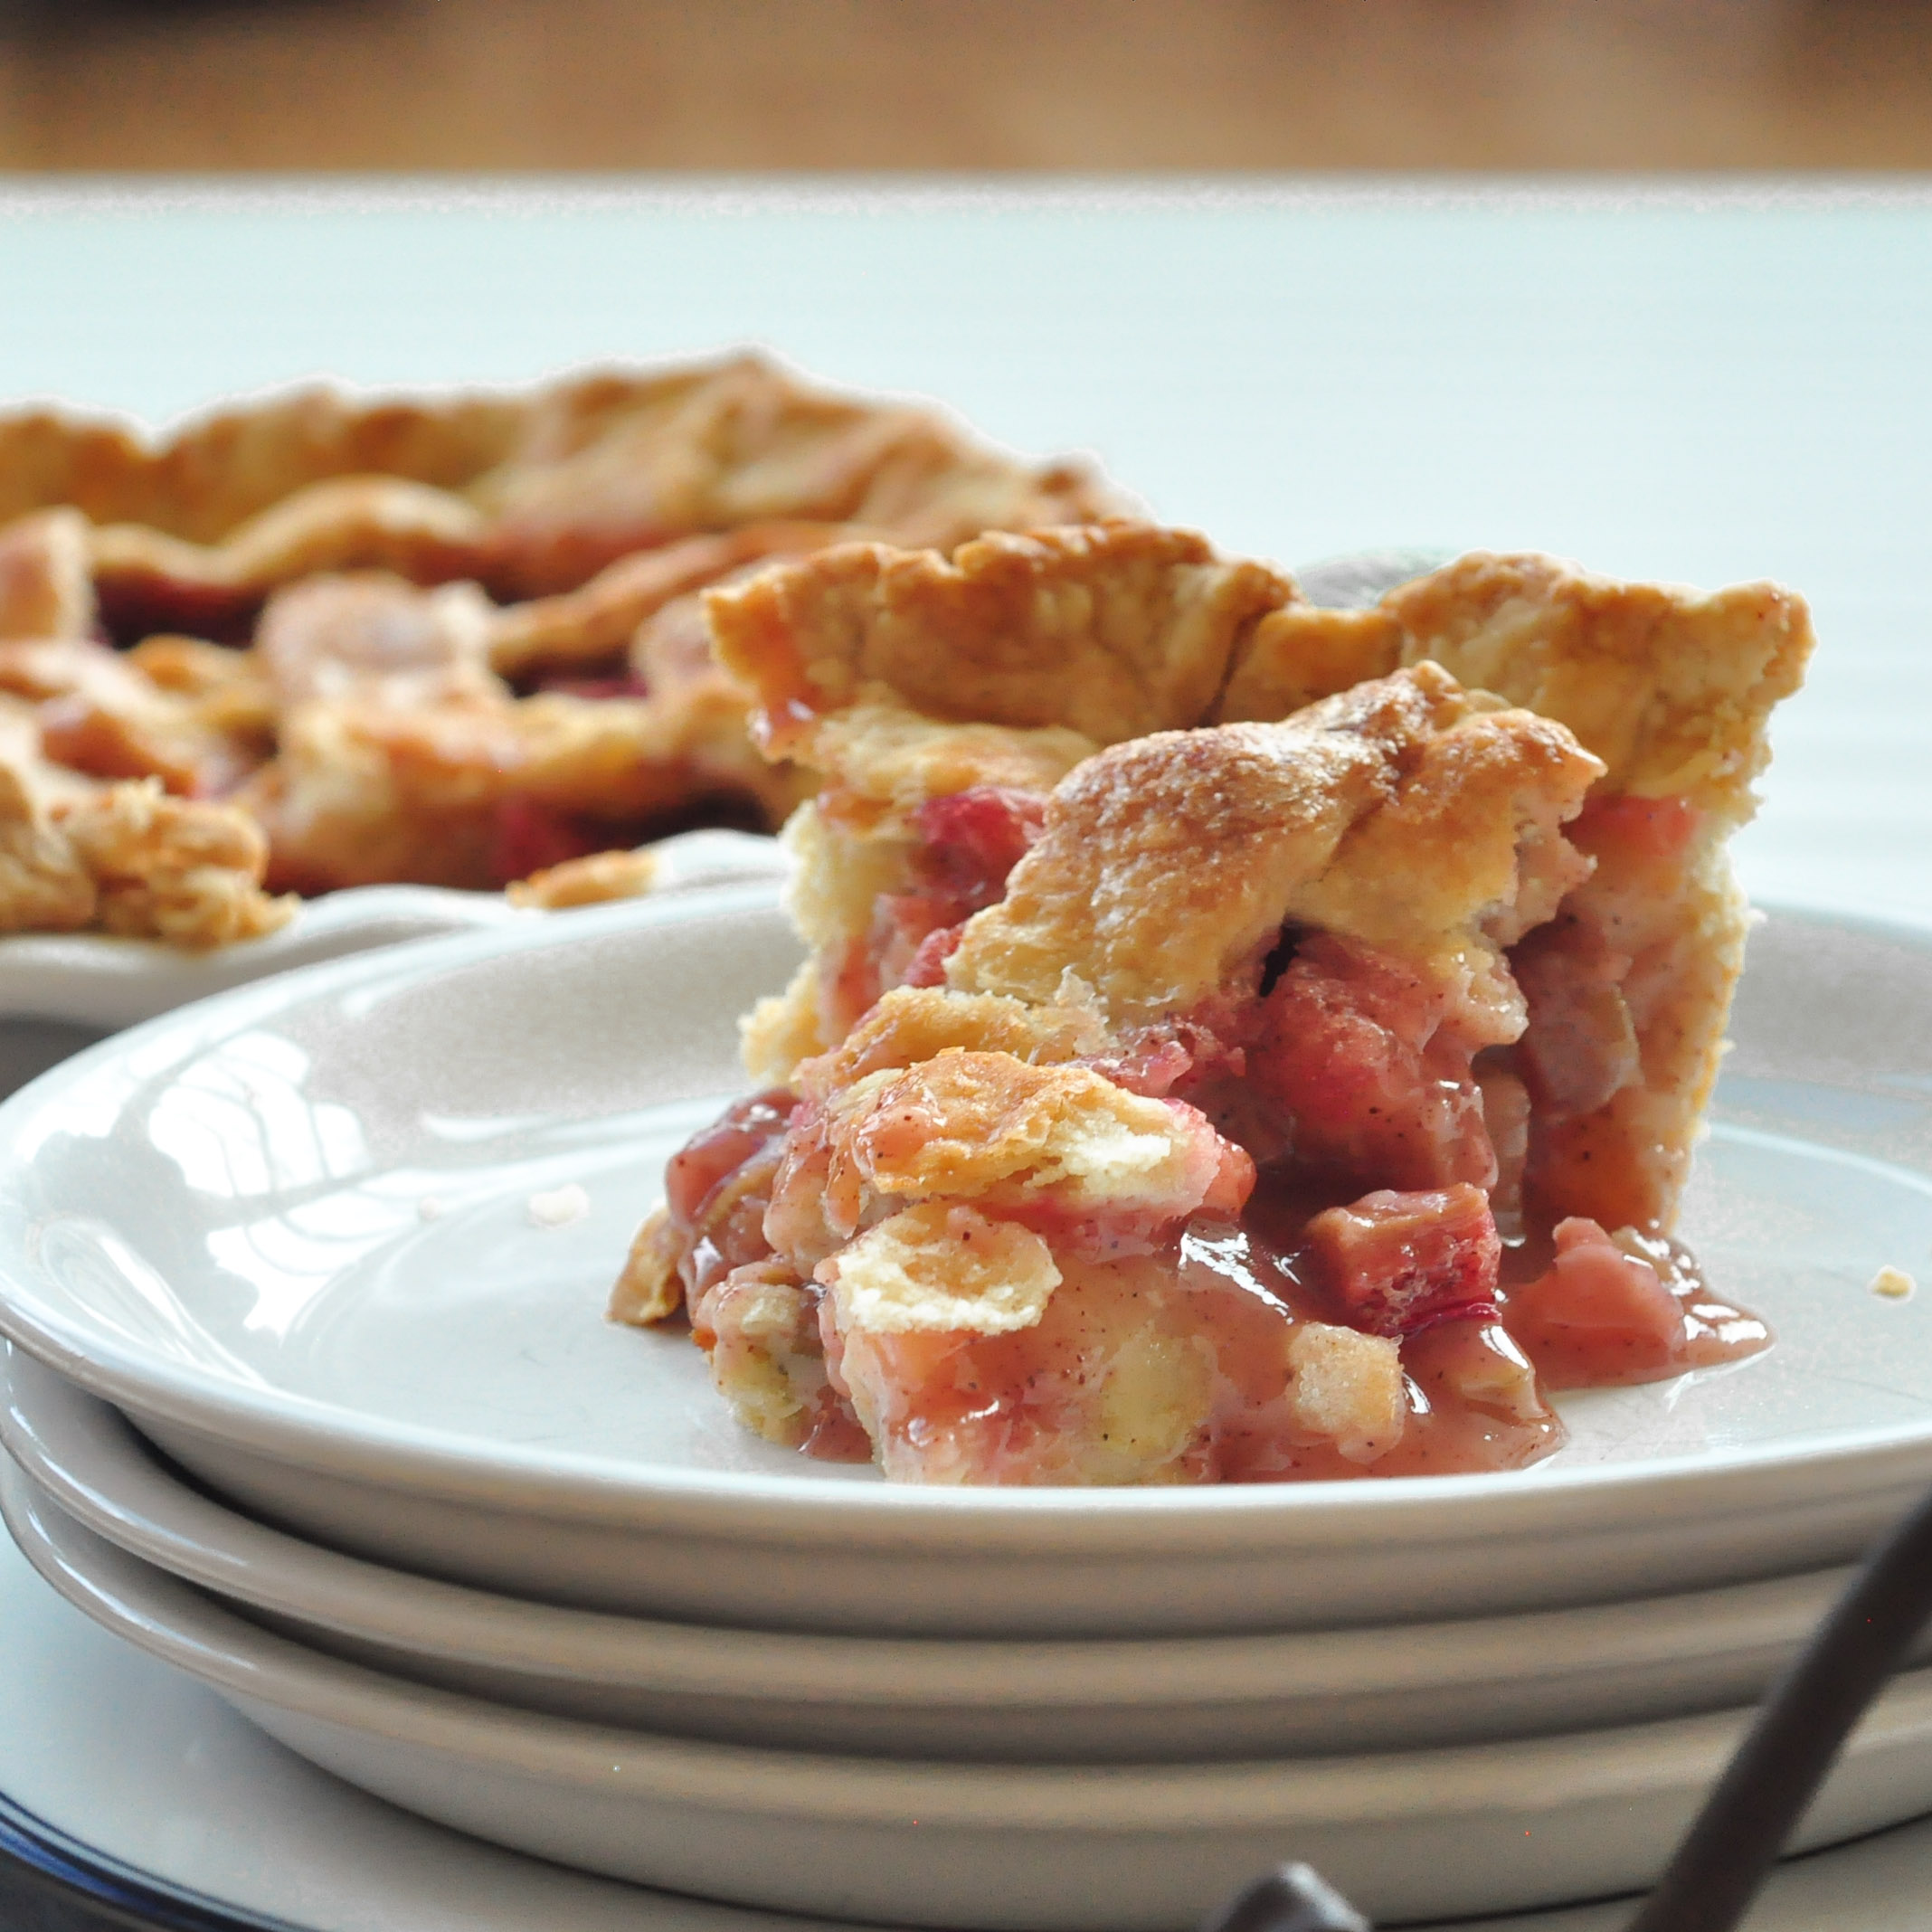 Watch Rhubarb Recipes: 7 Recipes to Make While Its in Season video